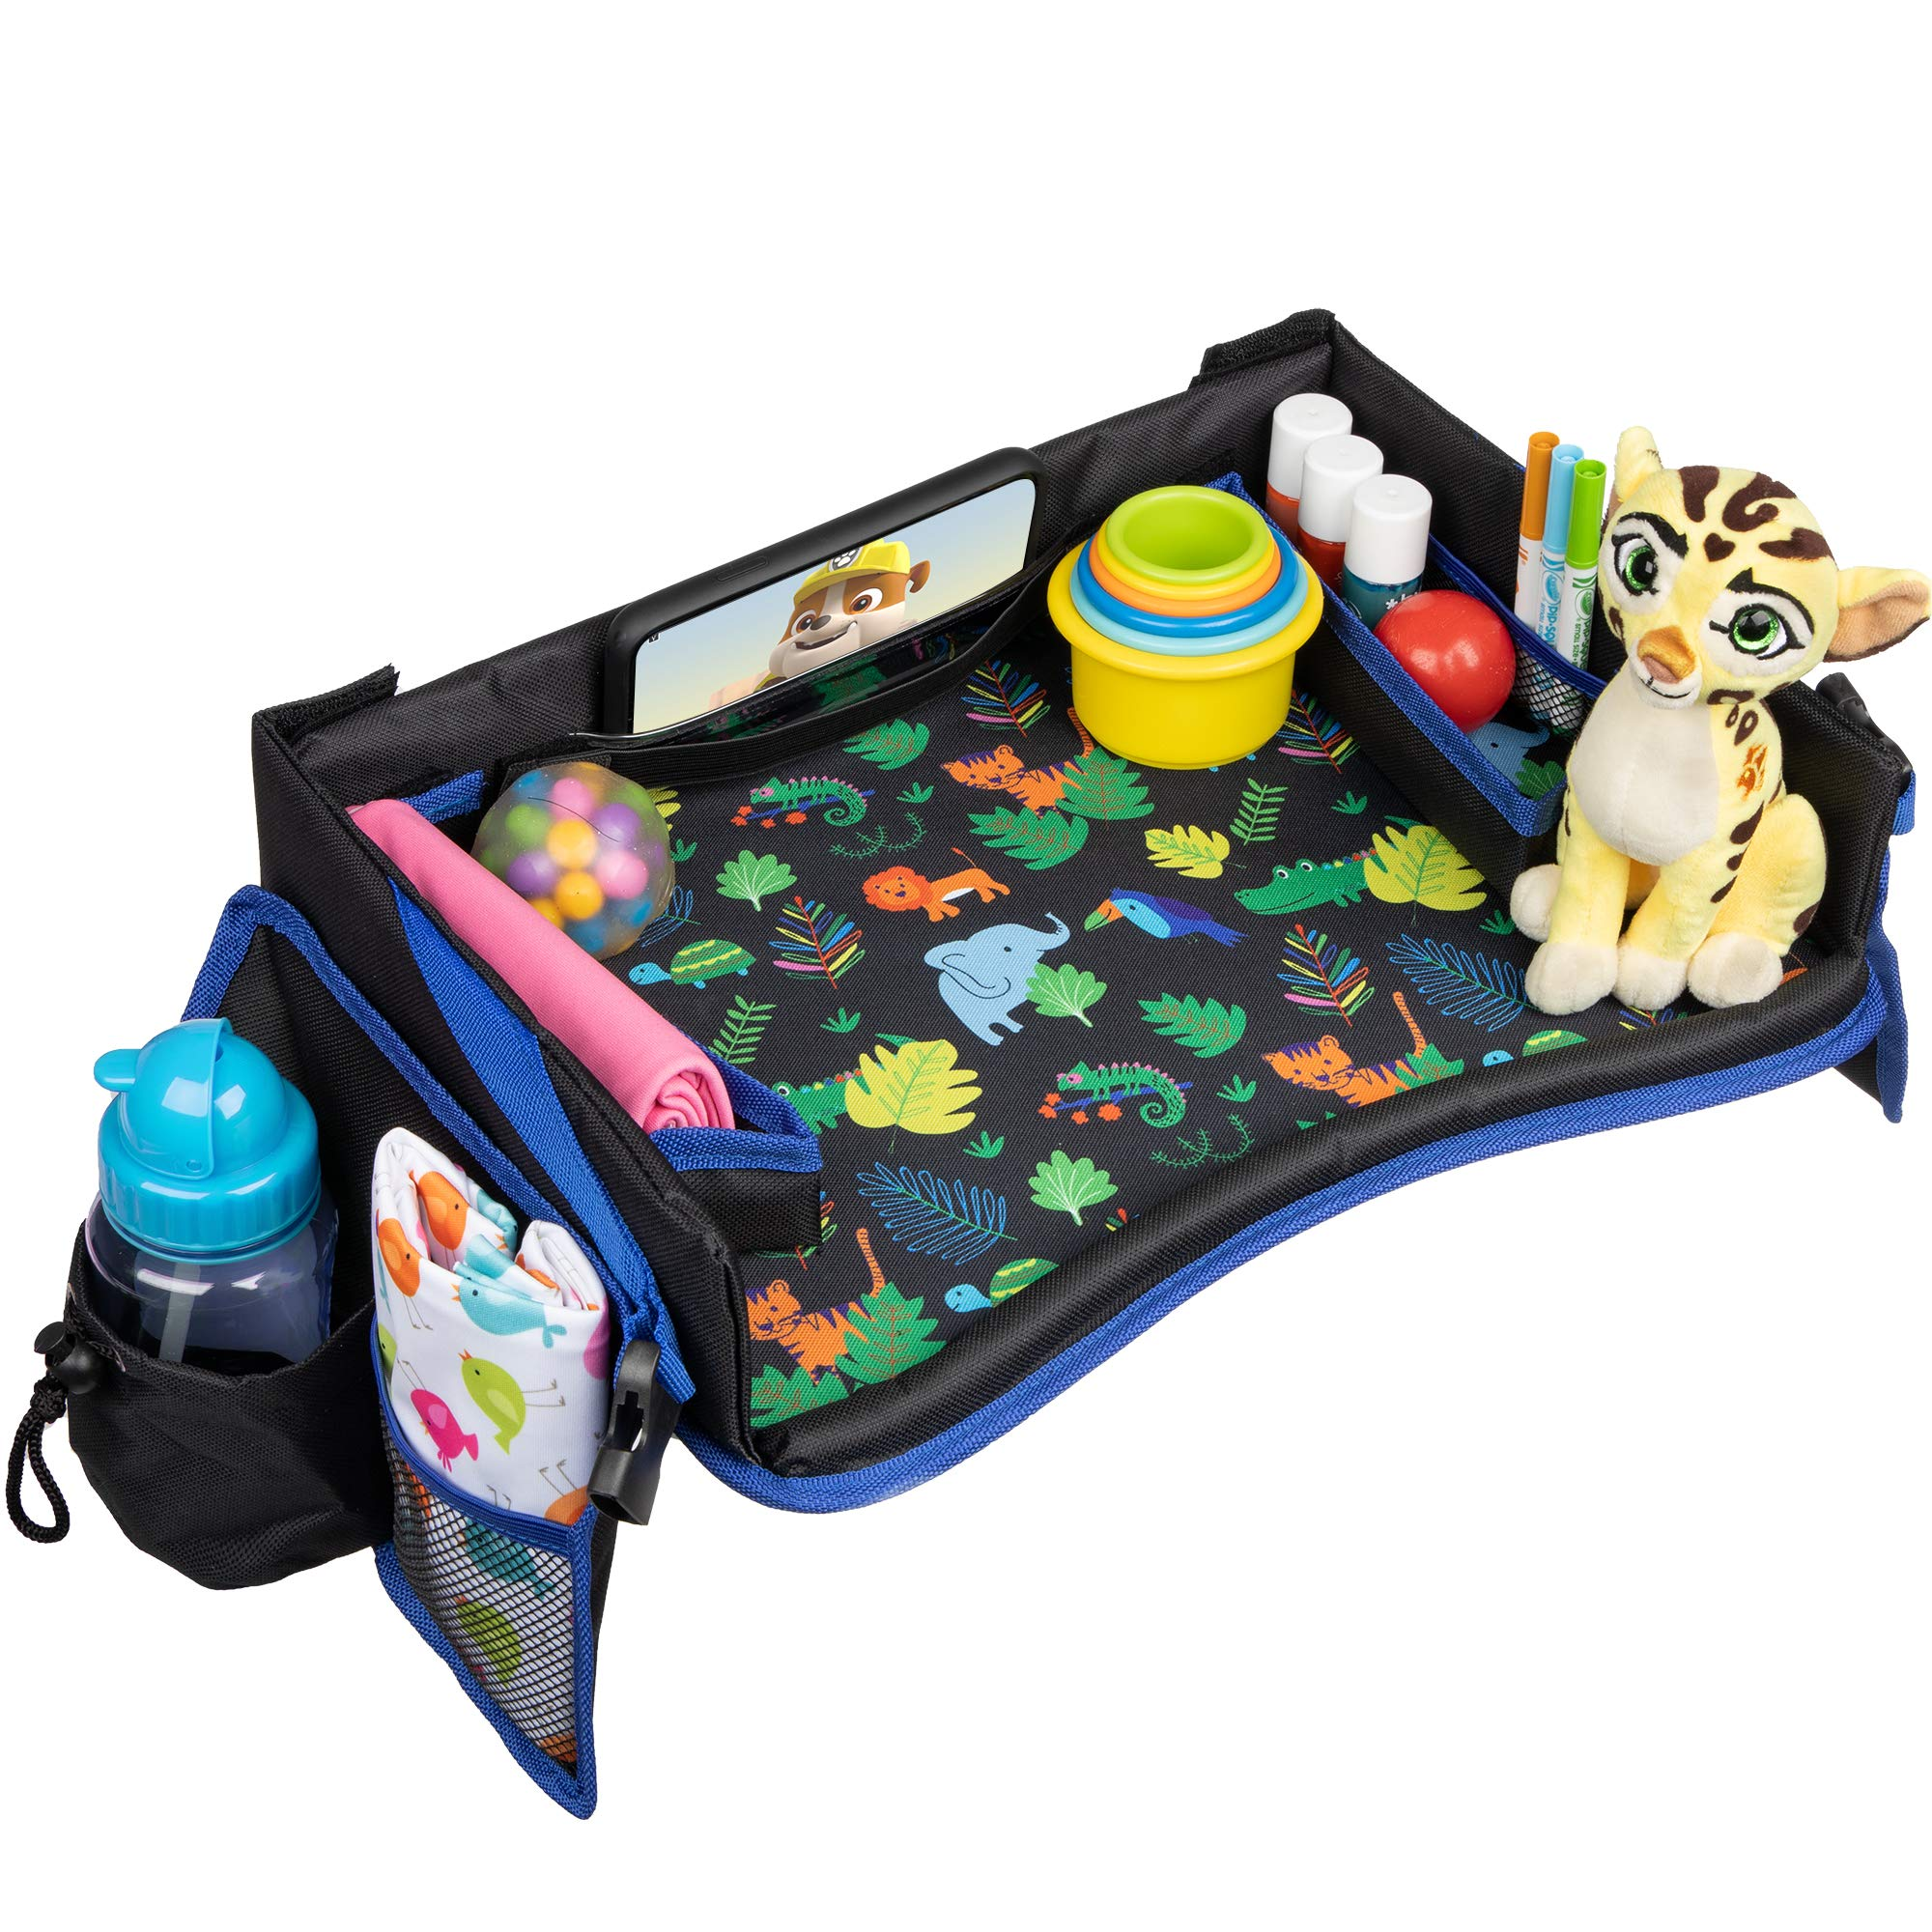 Kids Travel Tray with Carrying Bag - Premium Child Car Seat Activity Tray and Toddler Play Tray Organizer, Snack & Food Tray Carseat, Waterproof & Foldable, Tablet/iPhone Strap and Pouch by Happy Horizons